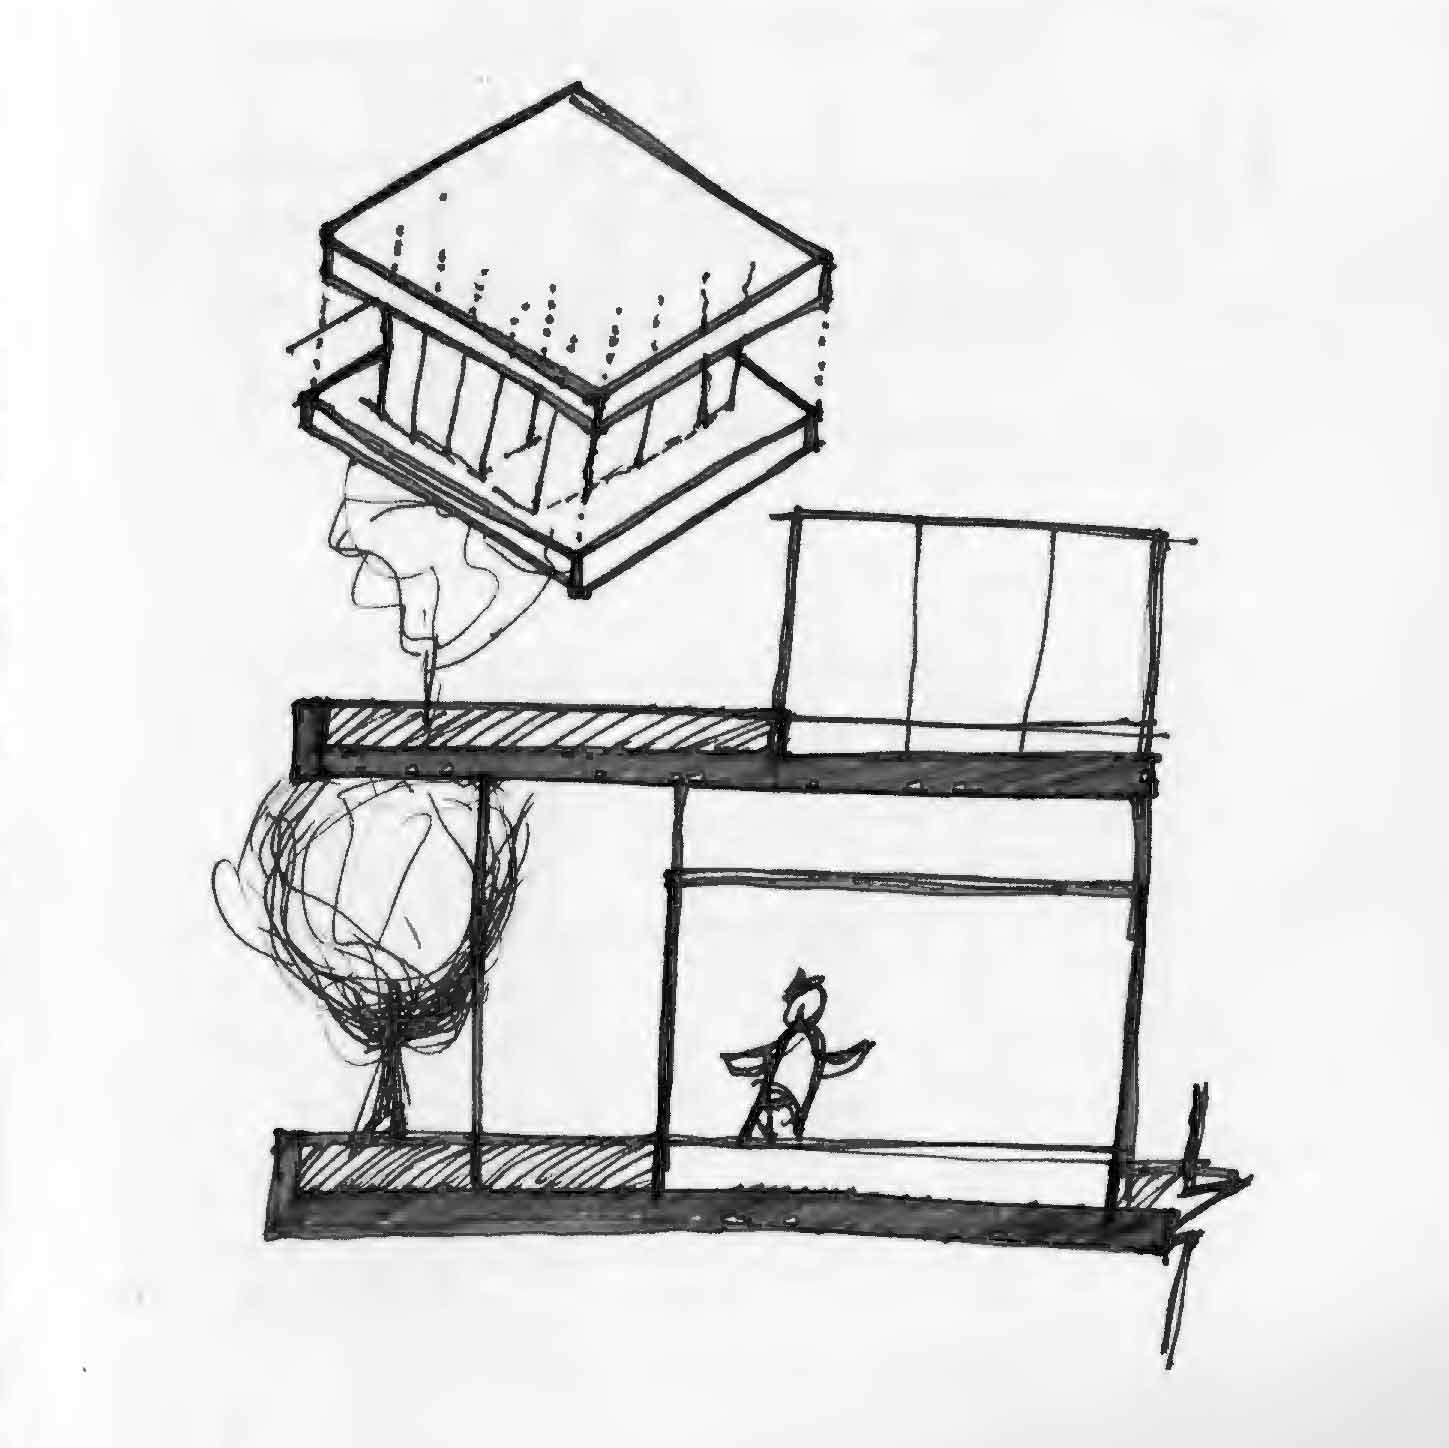 NYC Micro Dwelling Sketch Idea 1